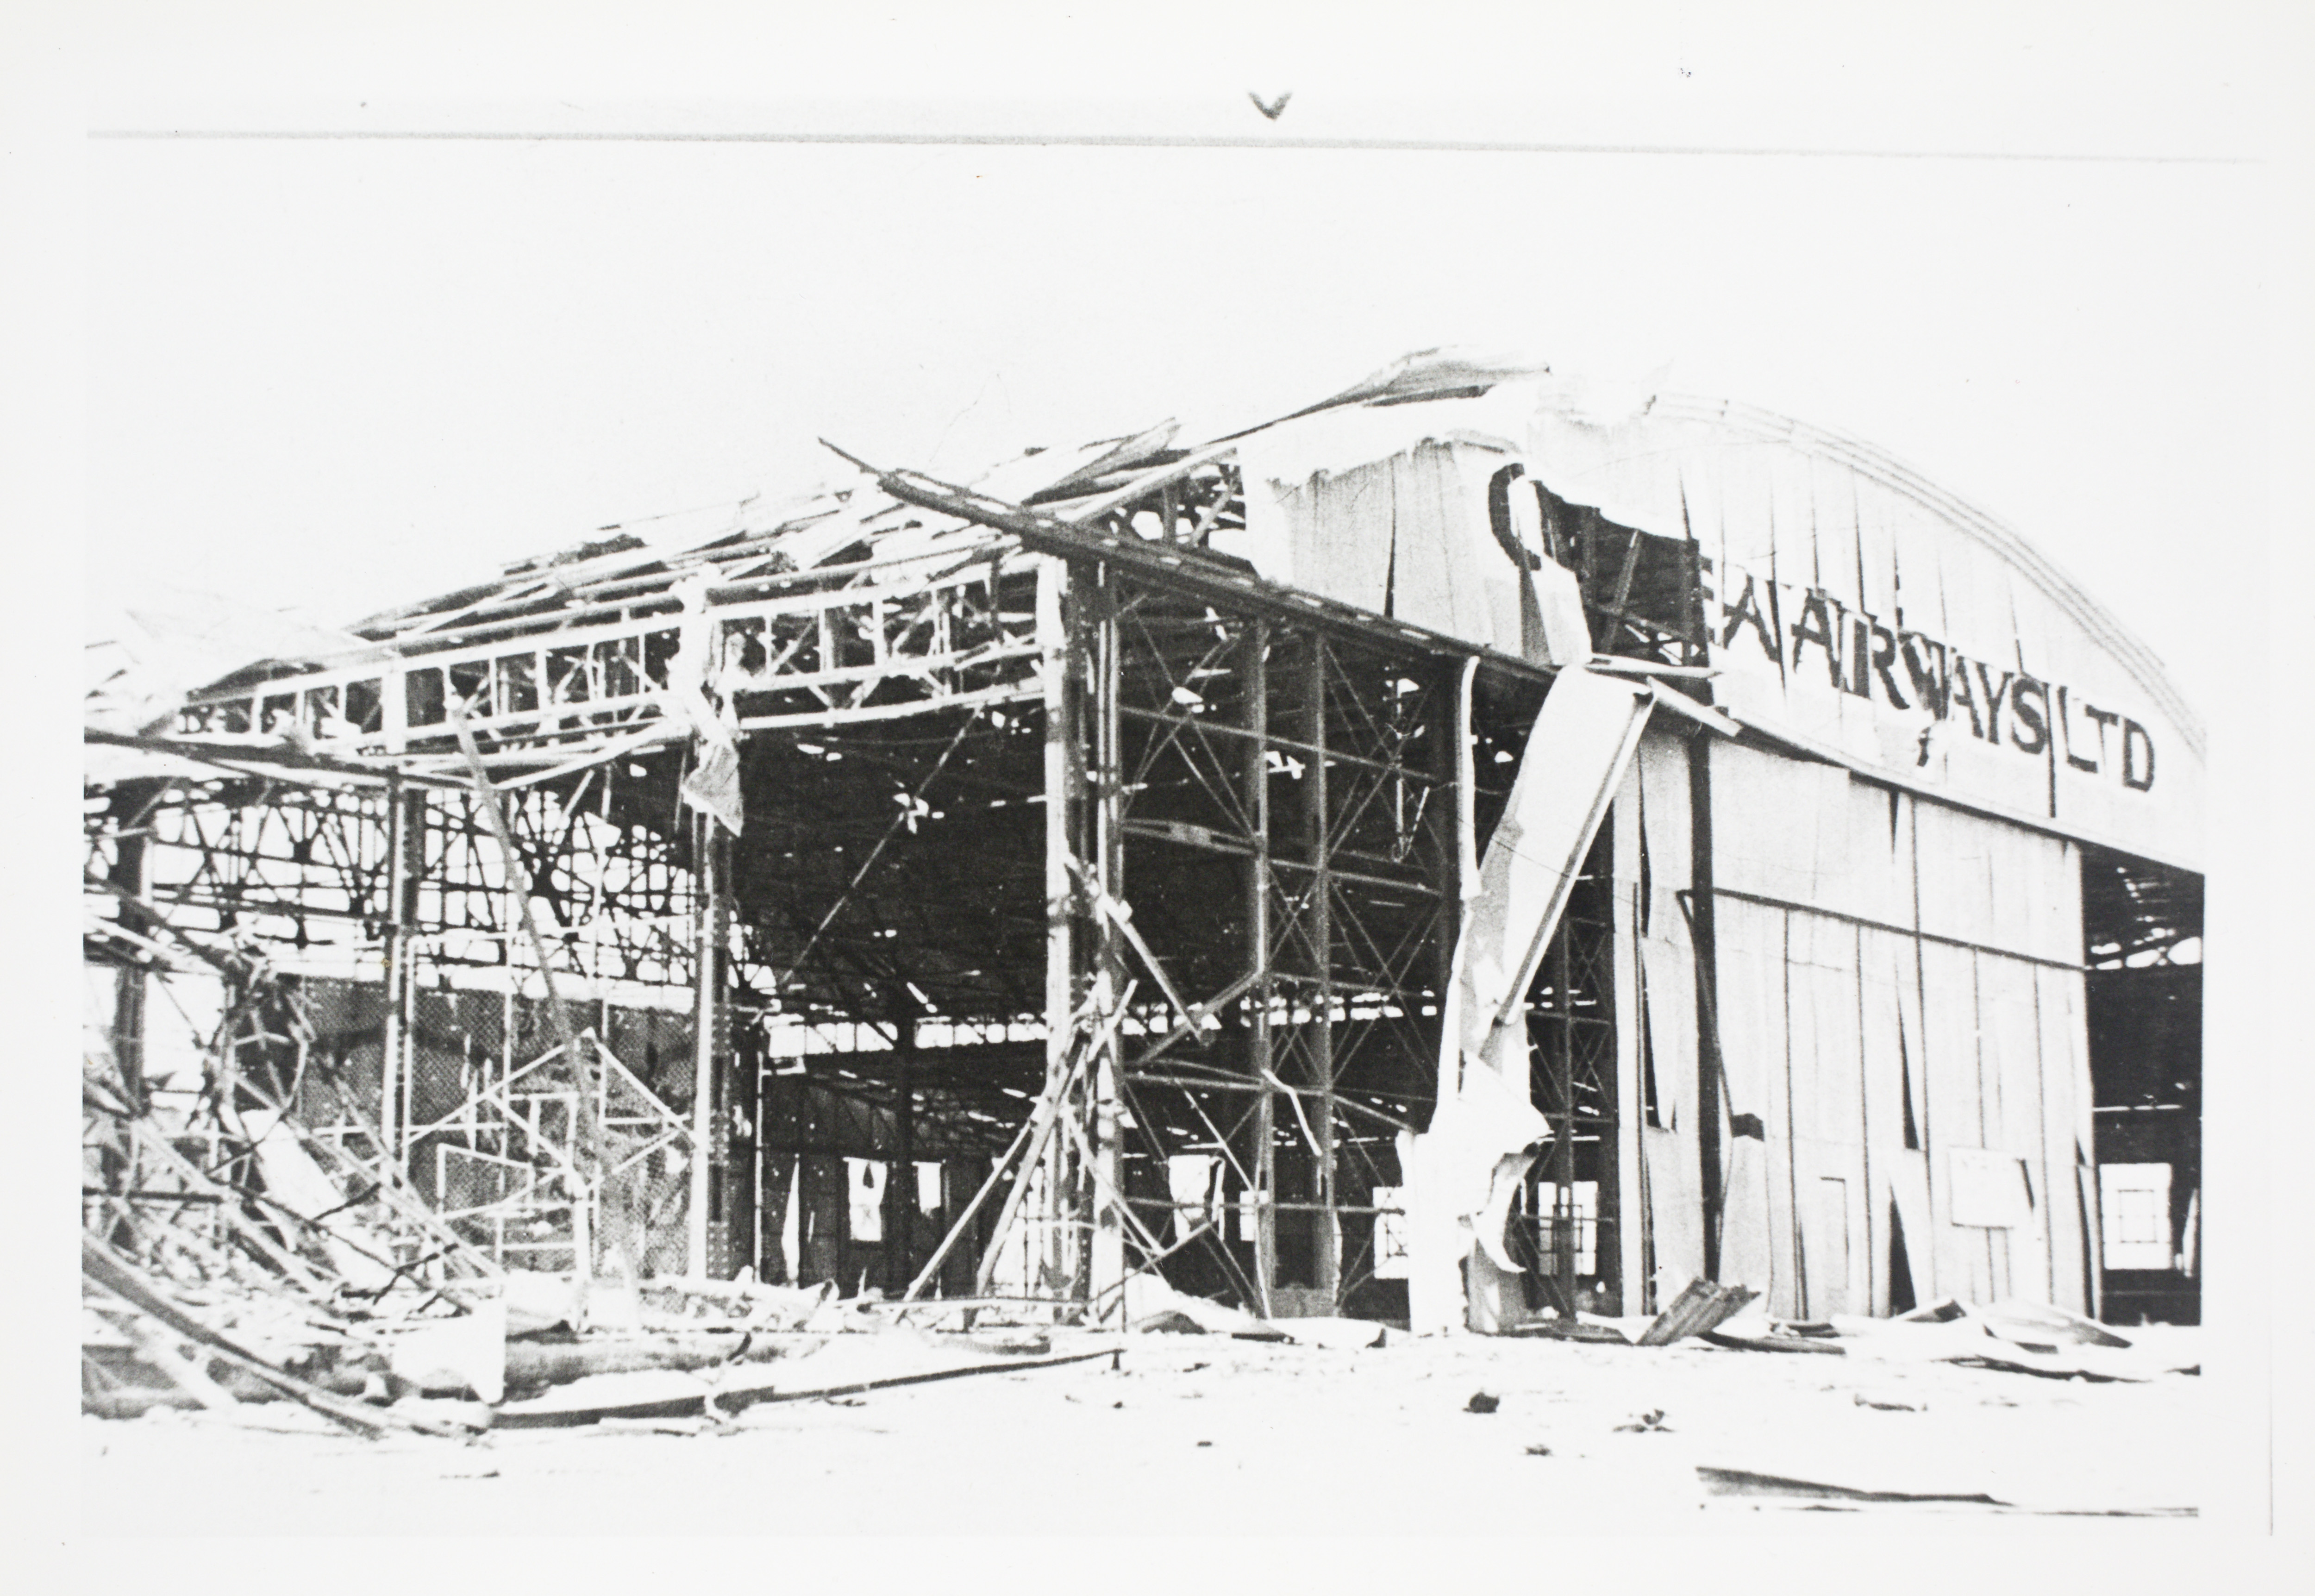 Bombed Guinea Airways hangar on civil strip at the Darwin Aerodrome after the first day of bombing.